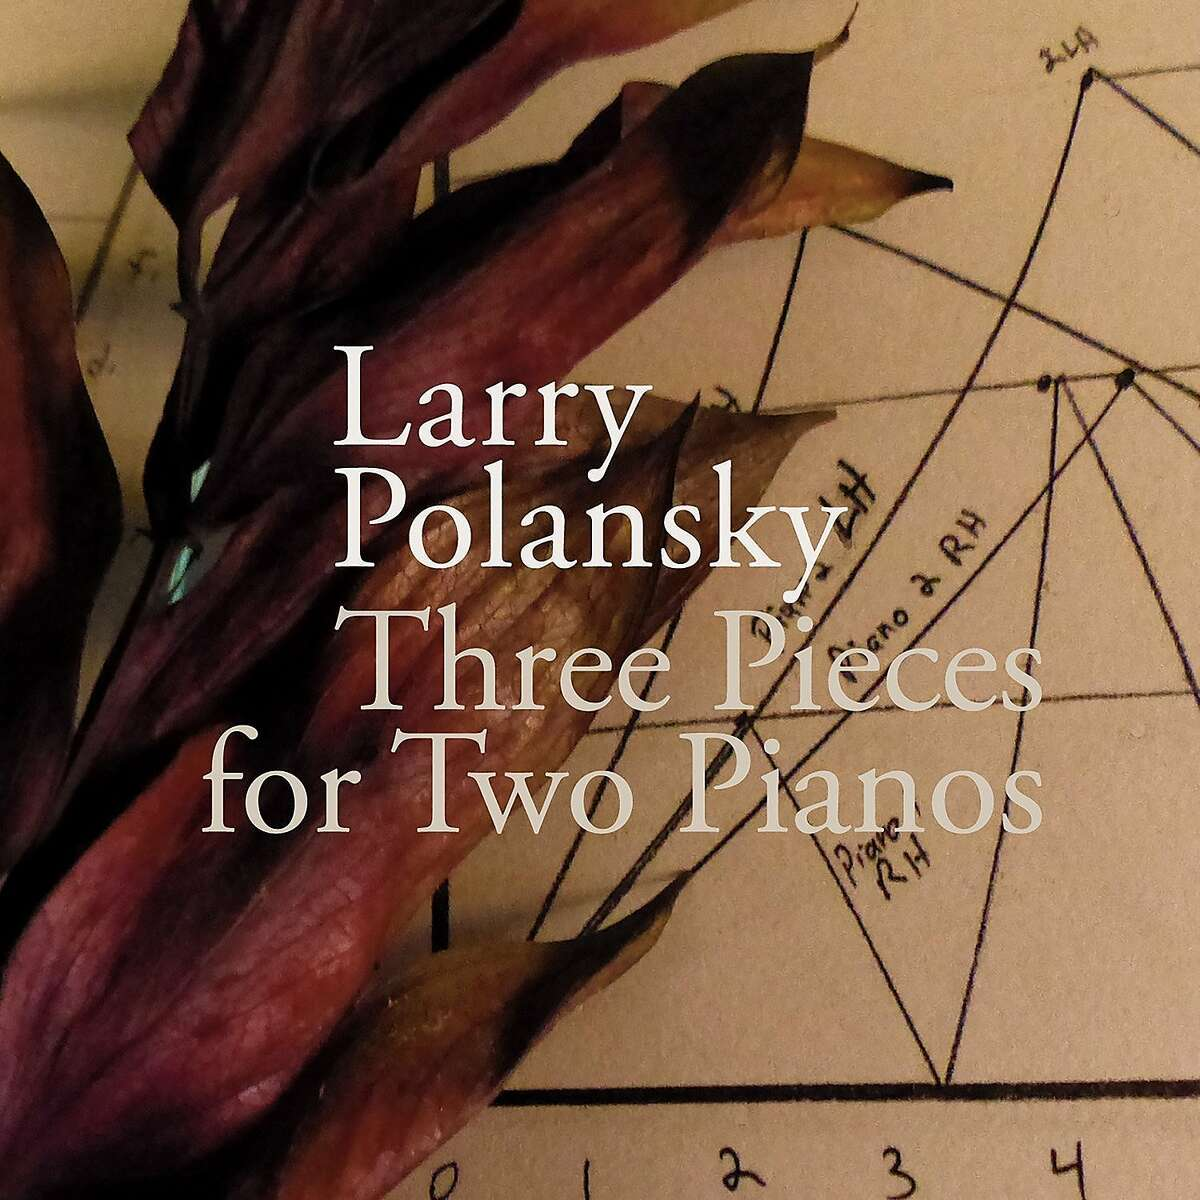 Larry Polansky, Three Pieces for Two Pianos